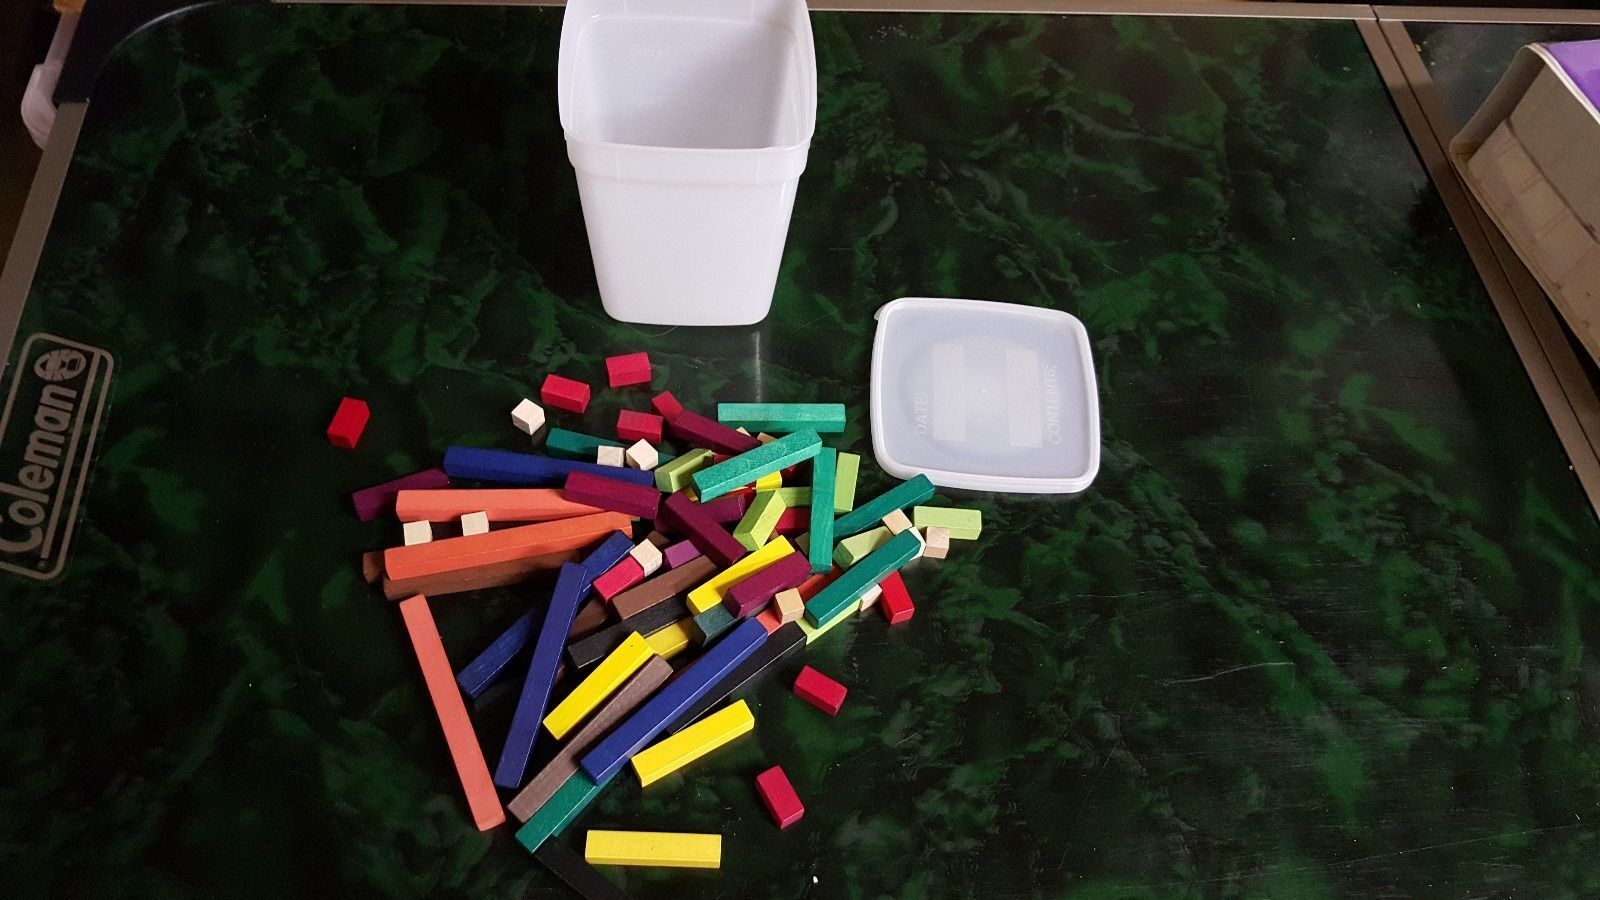 How To Use Cuisenaire Rods